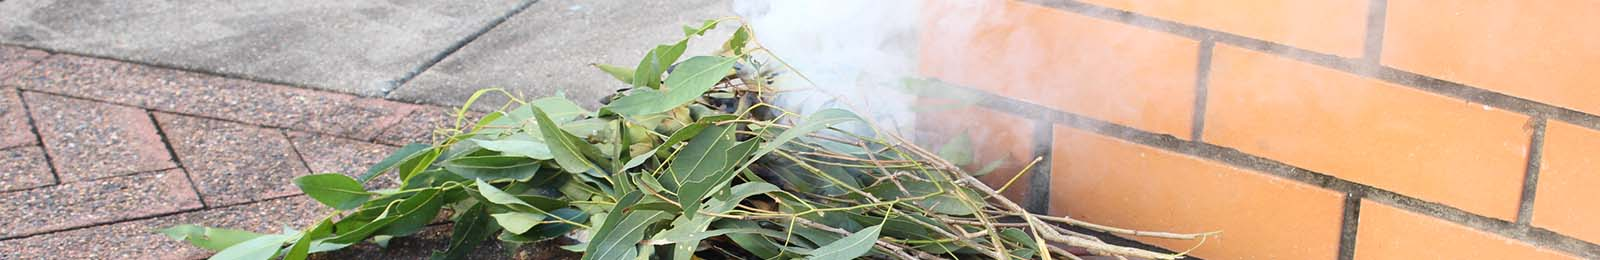 Image of leaves burning